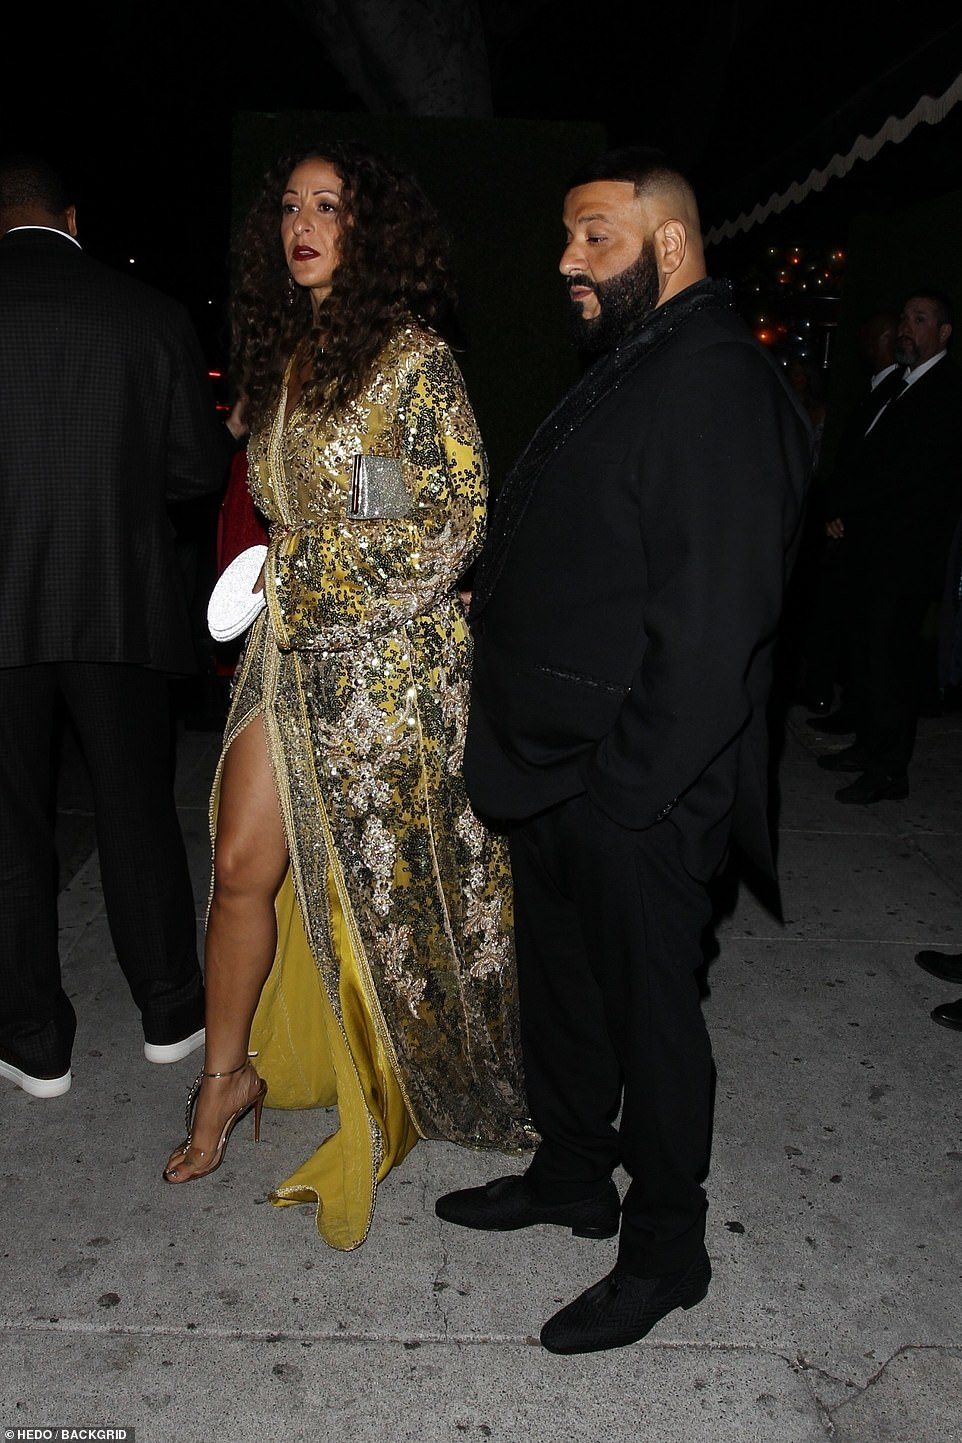 Good looking couple: Musician DJ Khaled joined by his gorgeous wife Nicole Tuck, who wowed in a gold gown